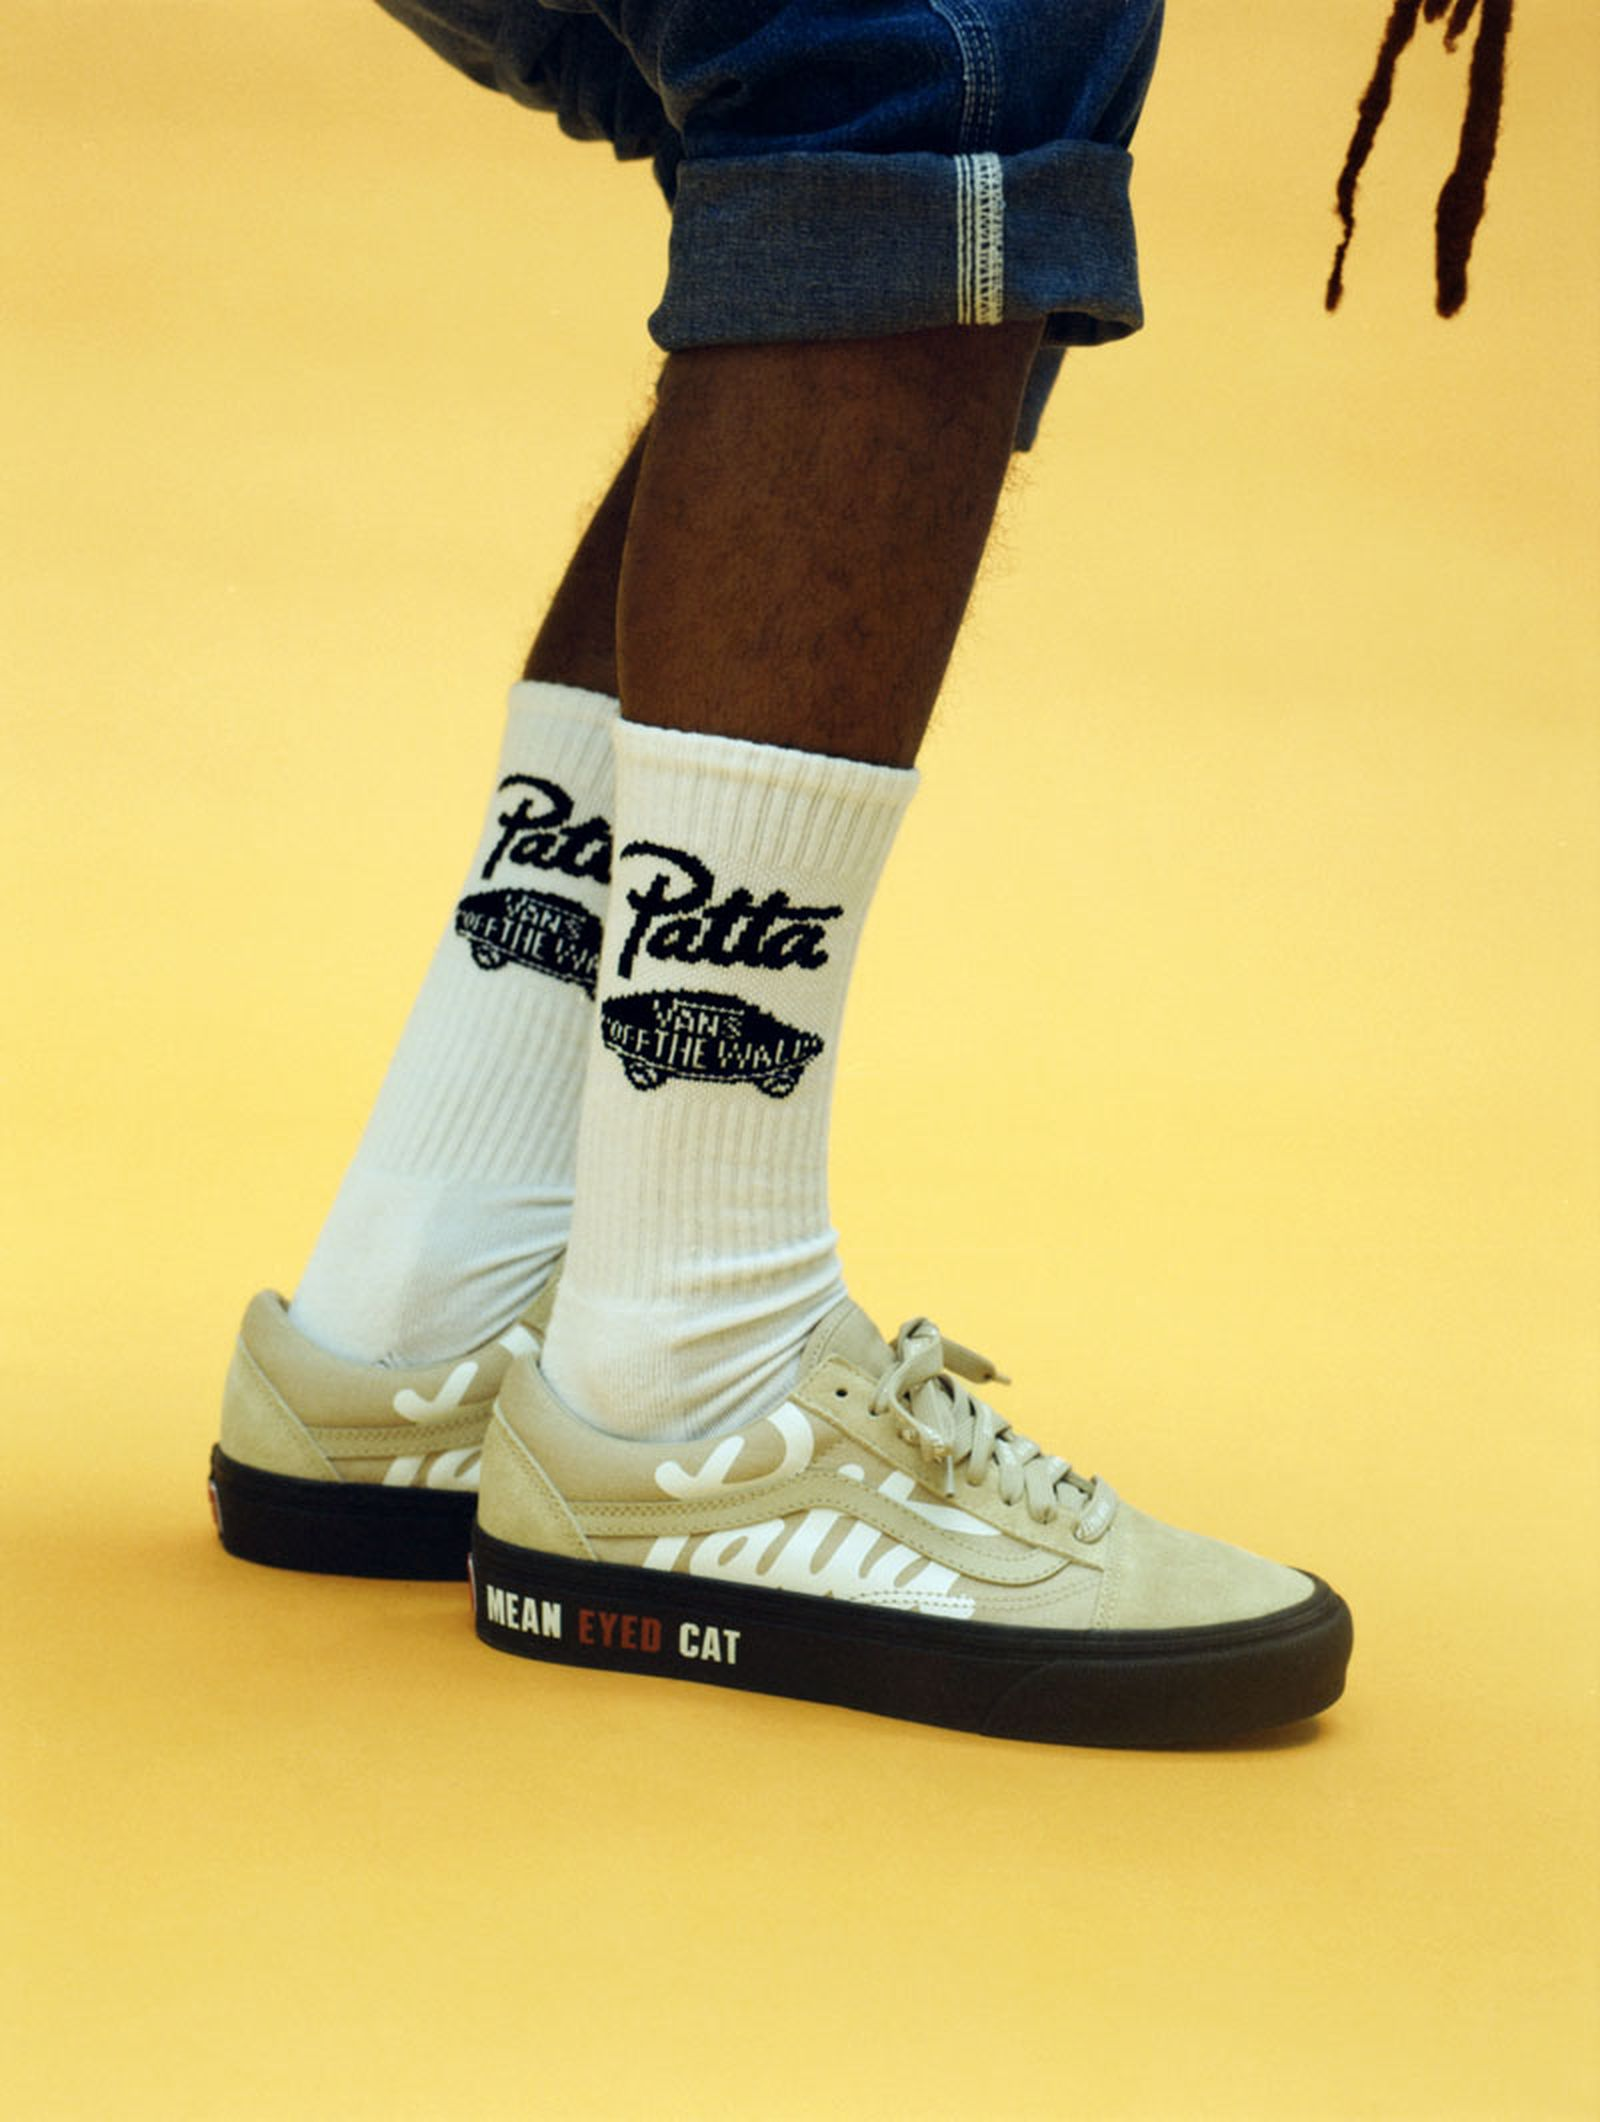 patta-vans-mean-eyed-cats-collection-release-date-price-07